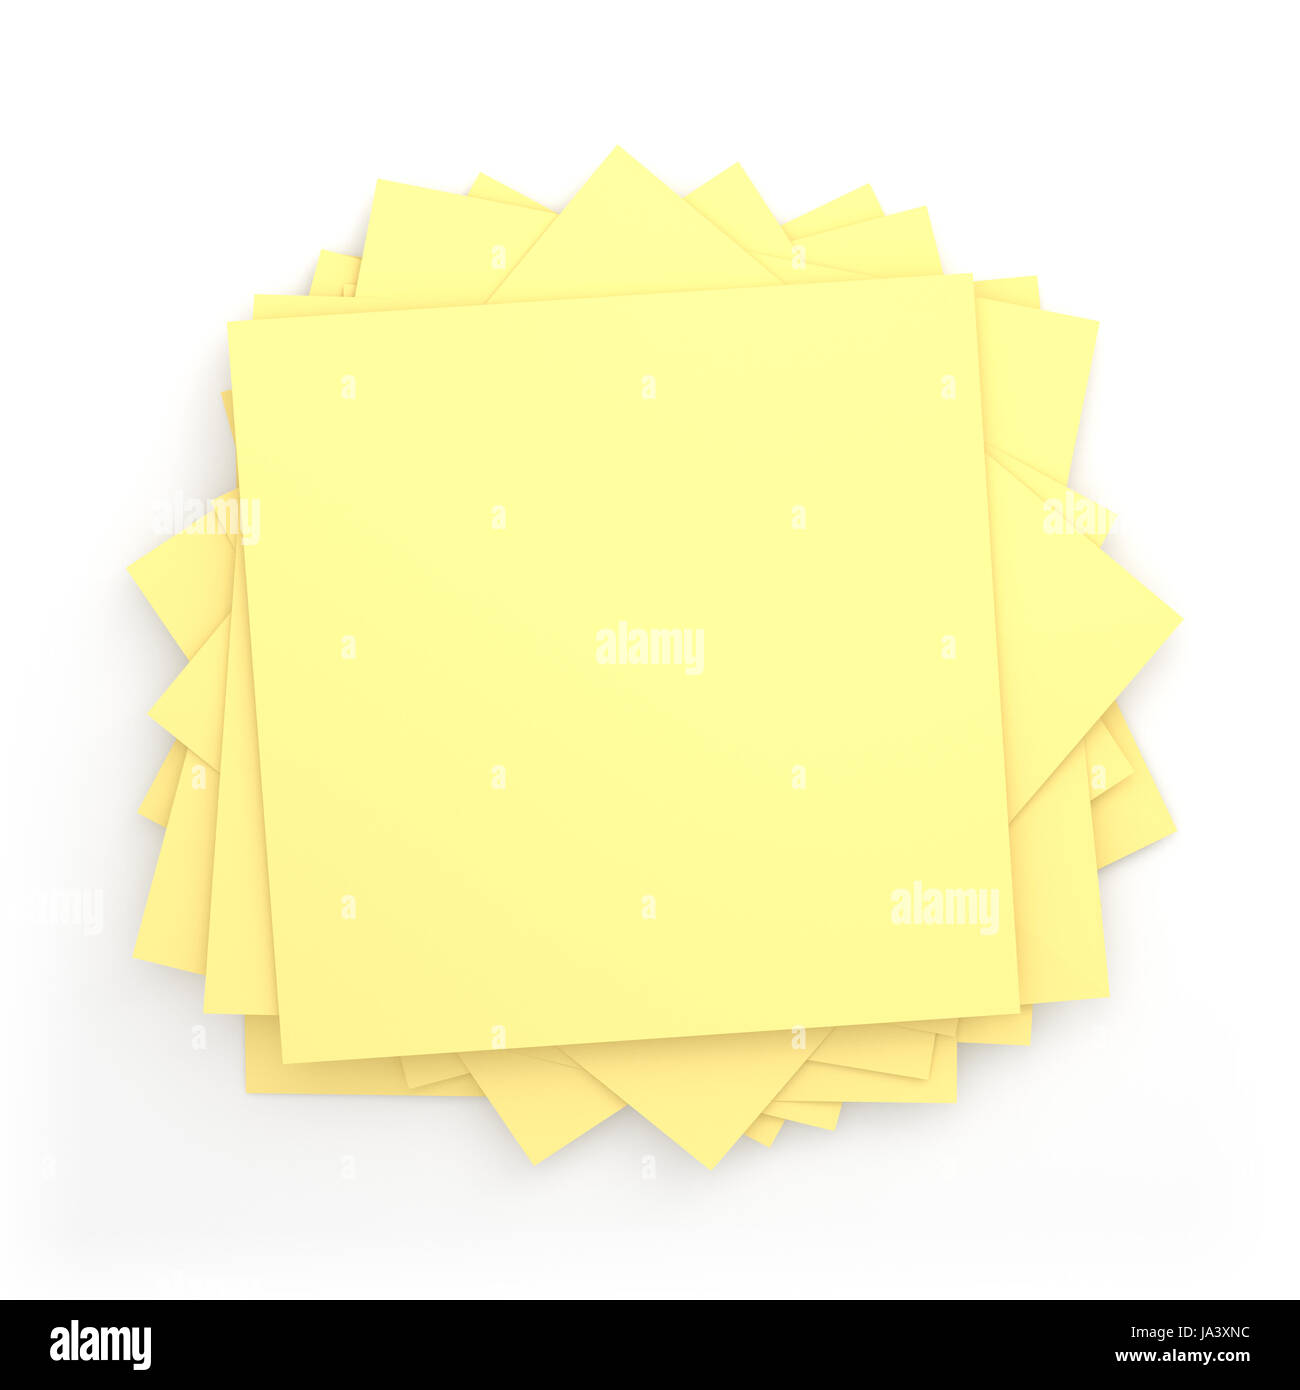 Organization notes sticky ideas note memo isolated stock organization notes sticky ideas note memo isolated communication jeuxipadfo Images